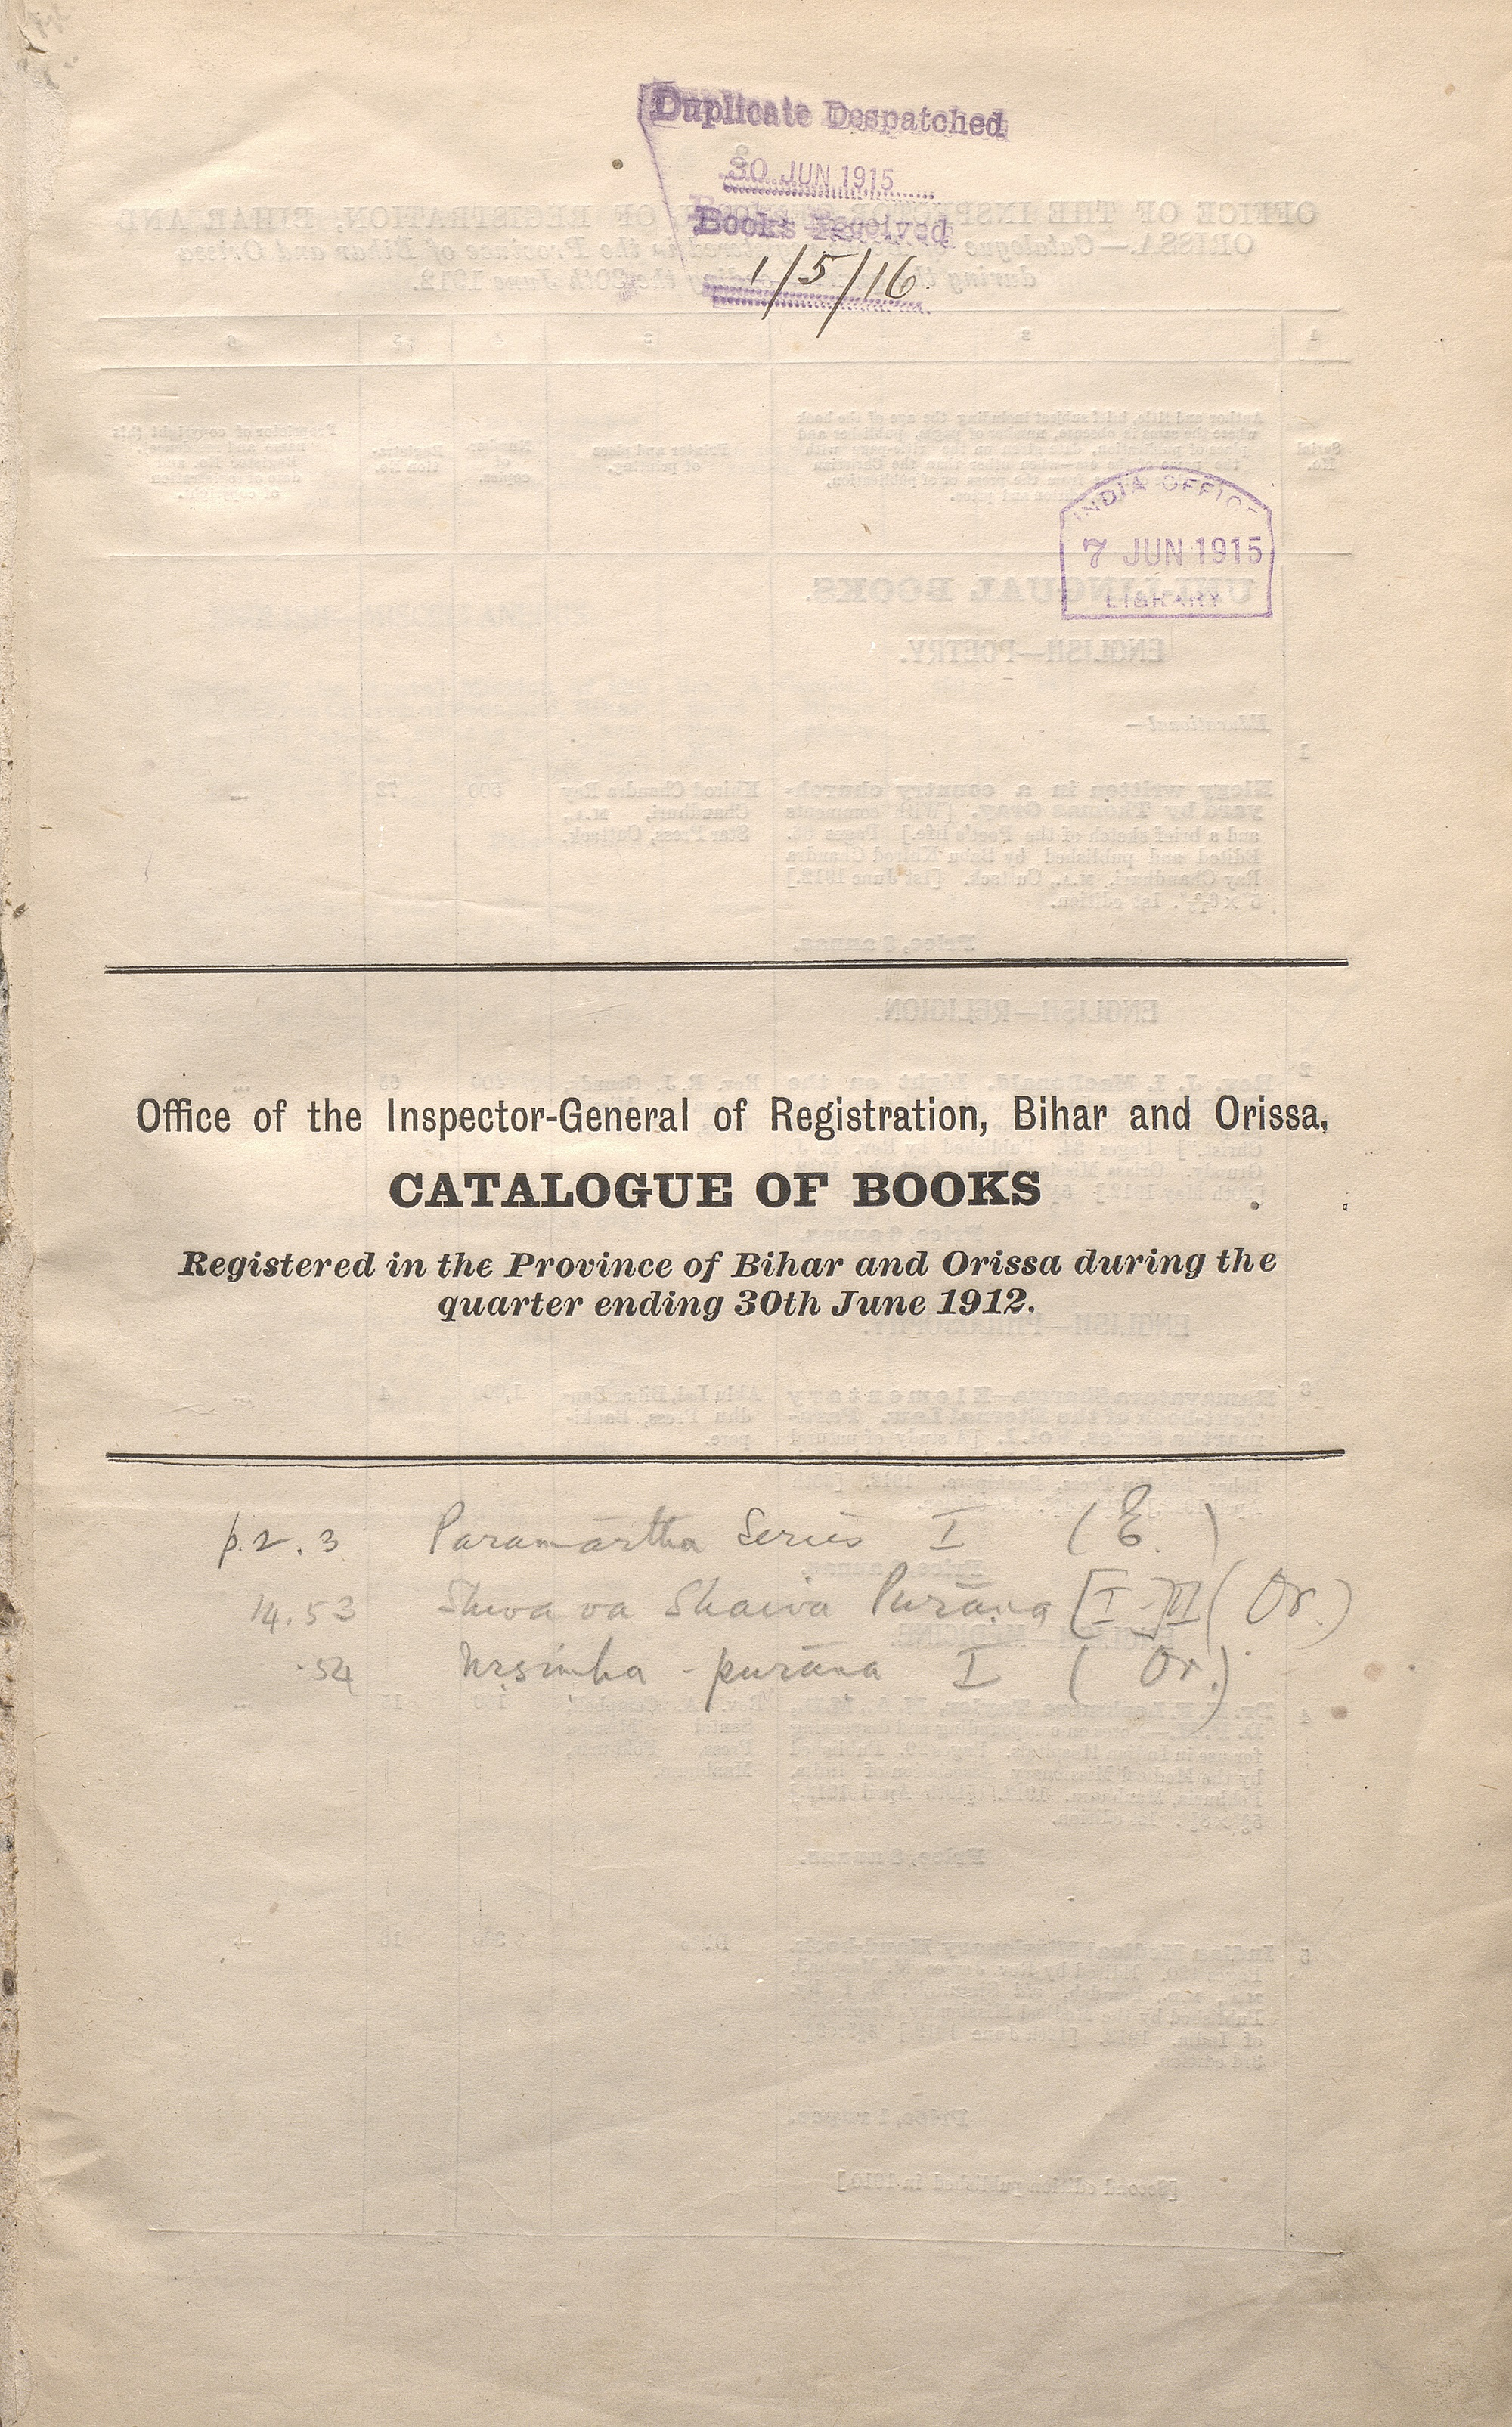 Bihar and Orissa Catalogue of Books, 1912-1916